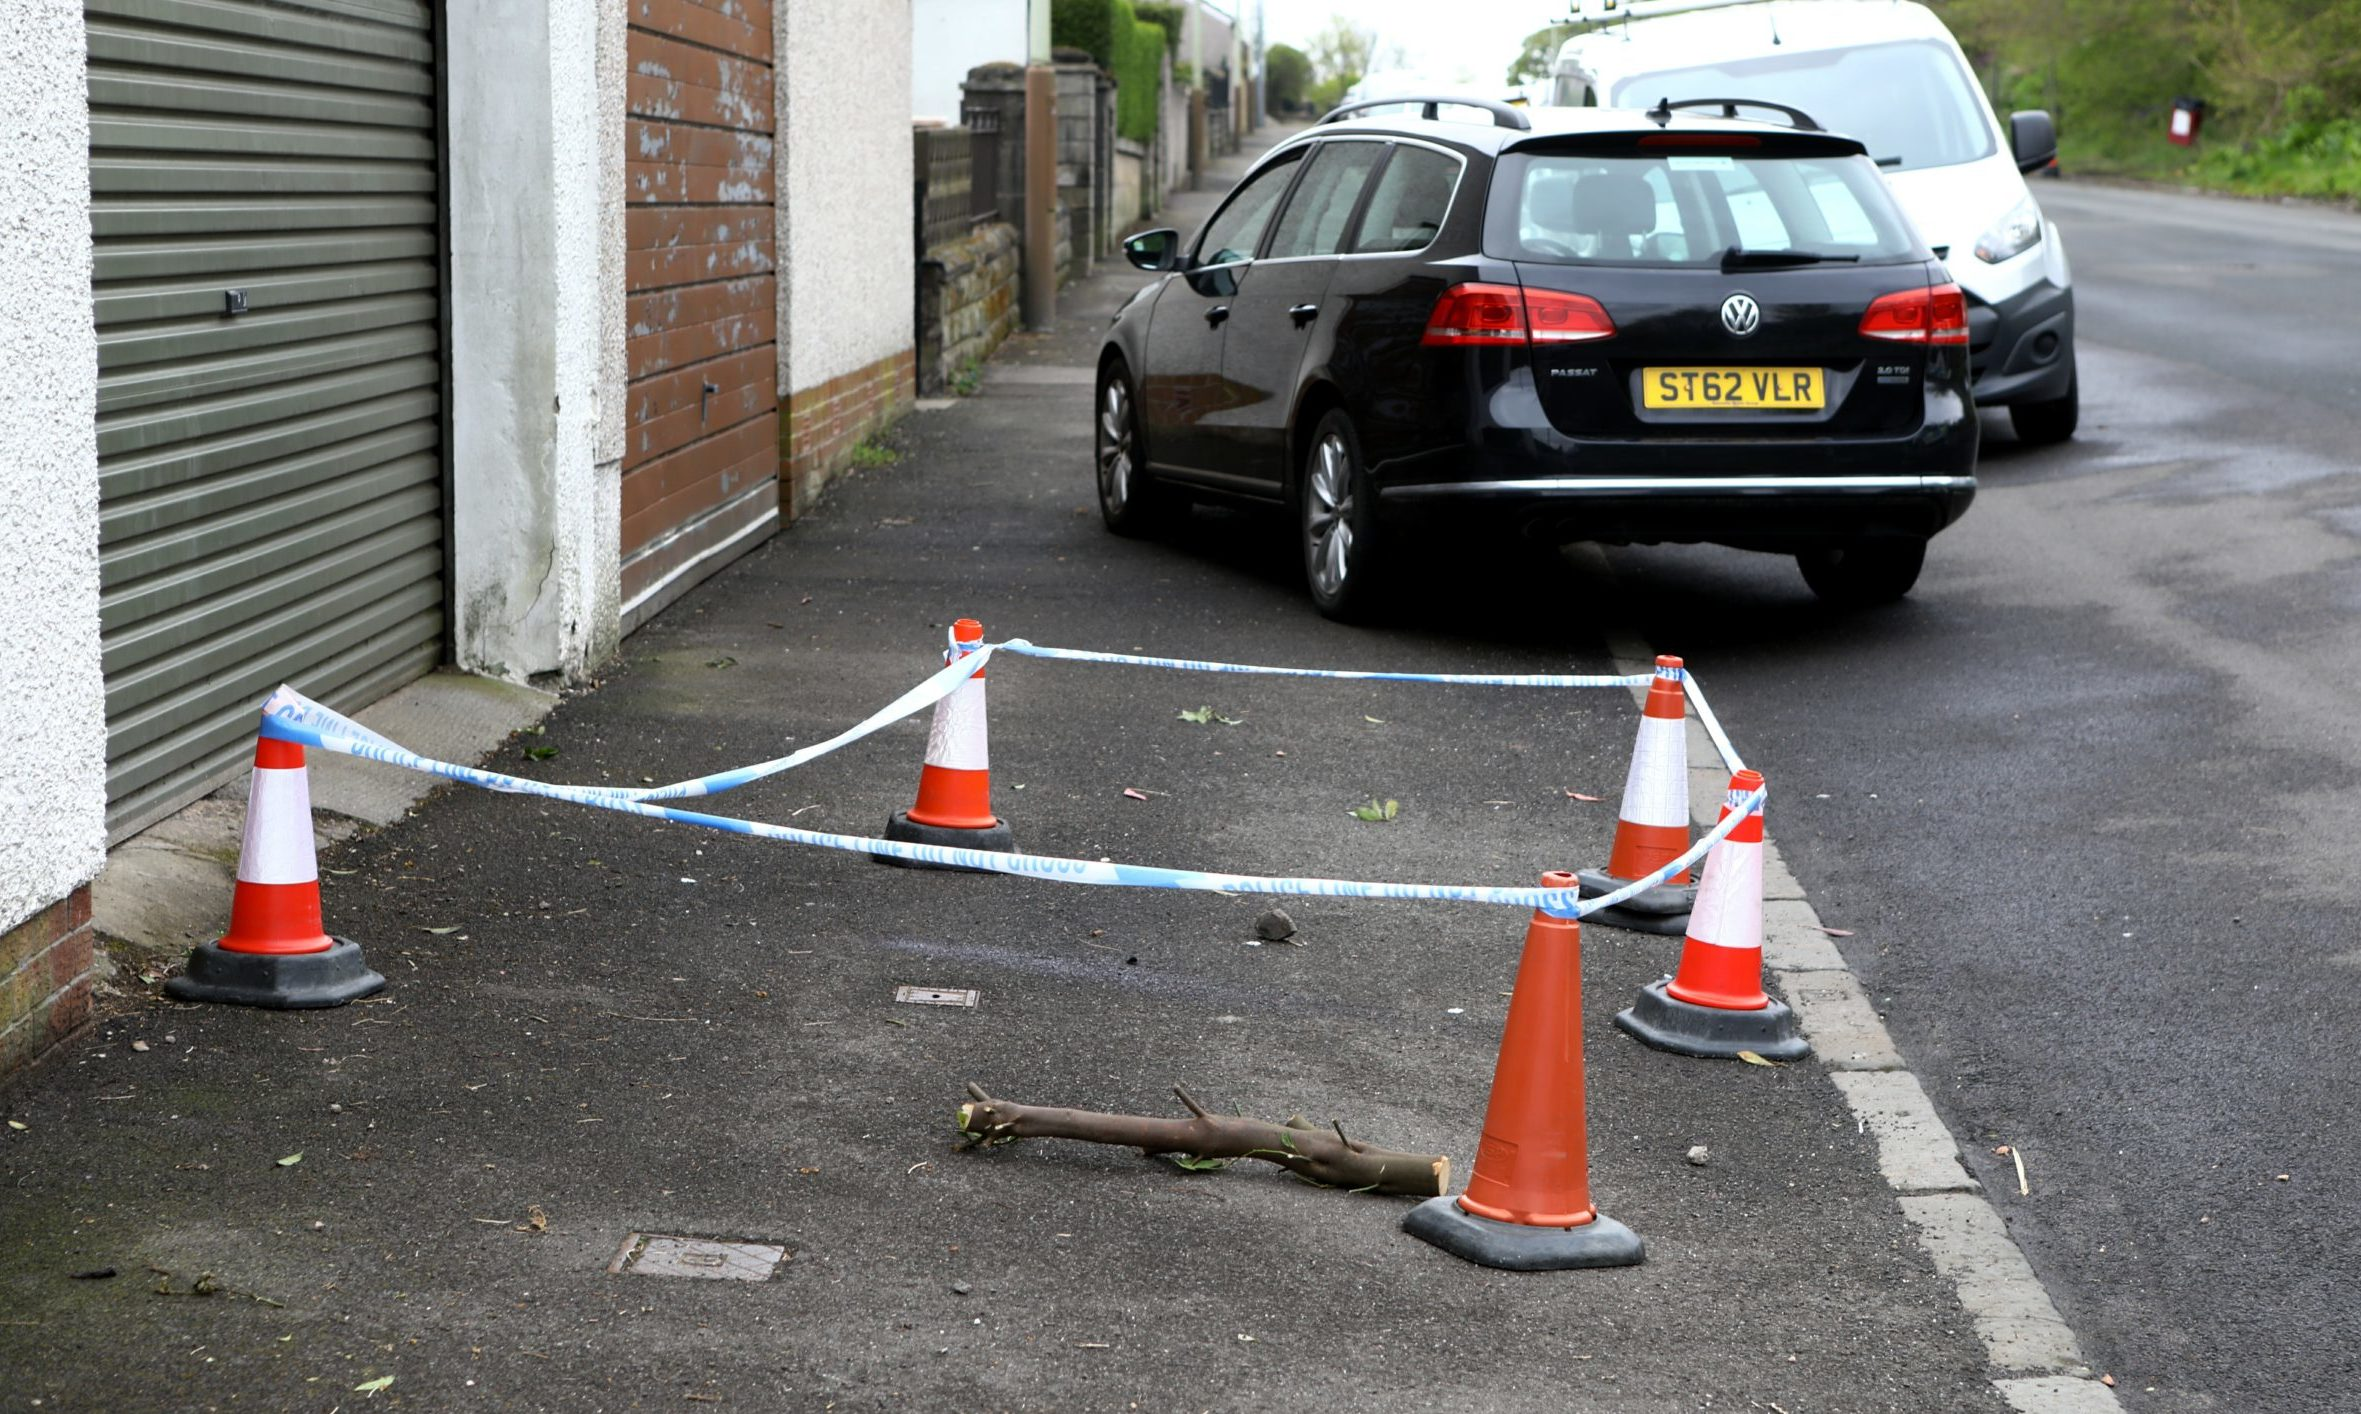 The scene at Kinghorne Road in Dundee where a man collapsed before his death.